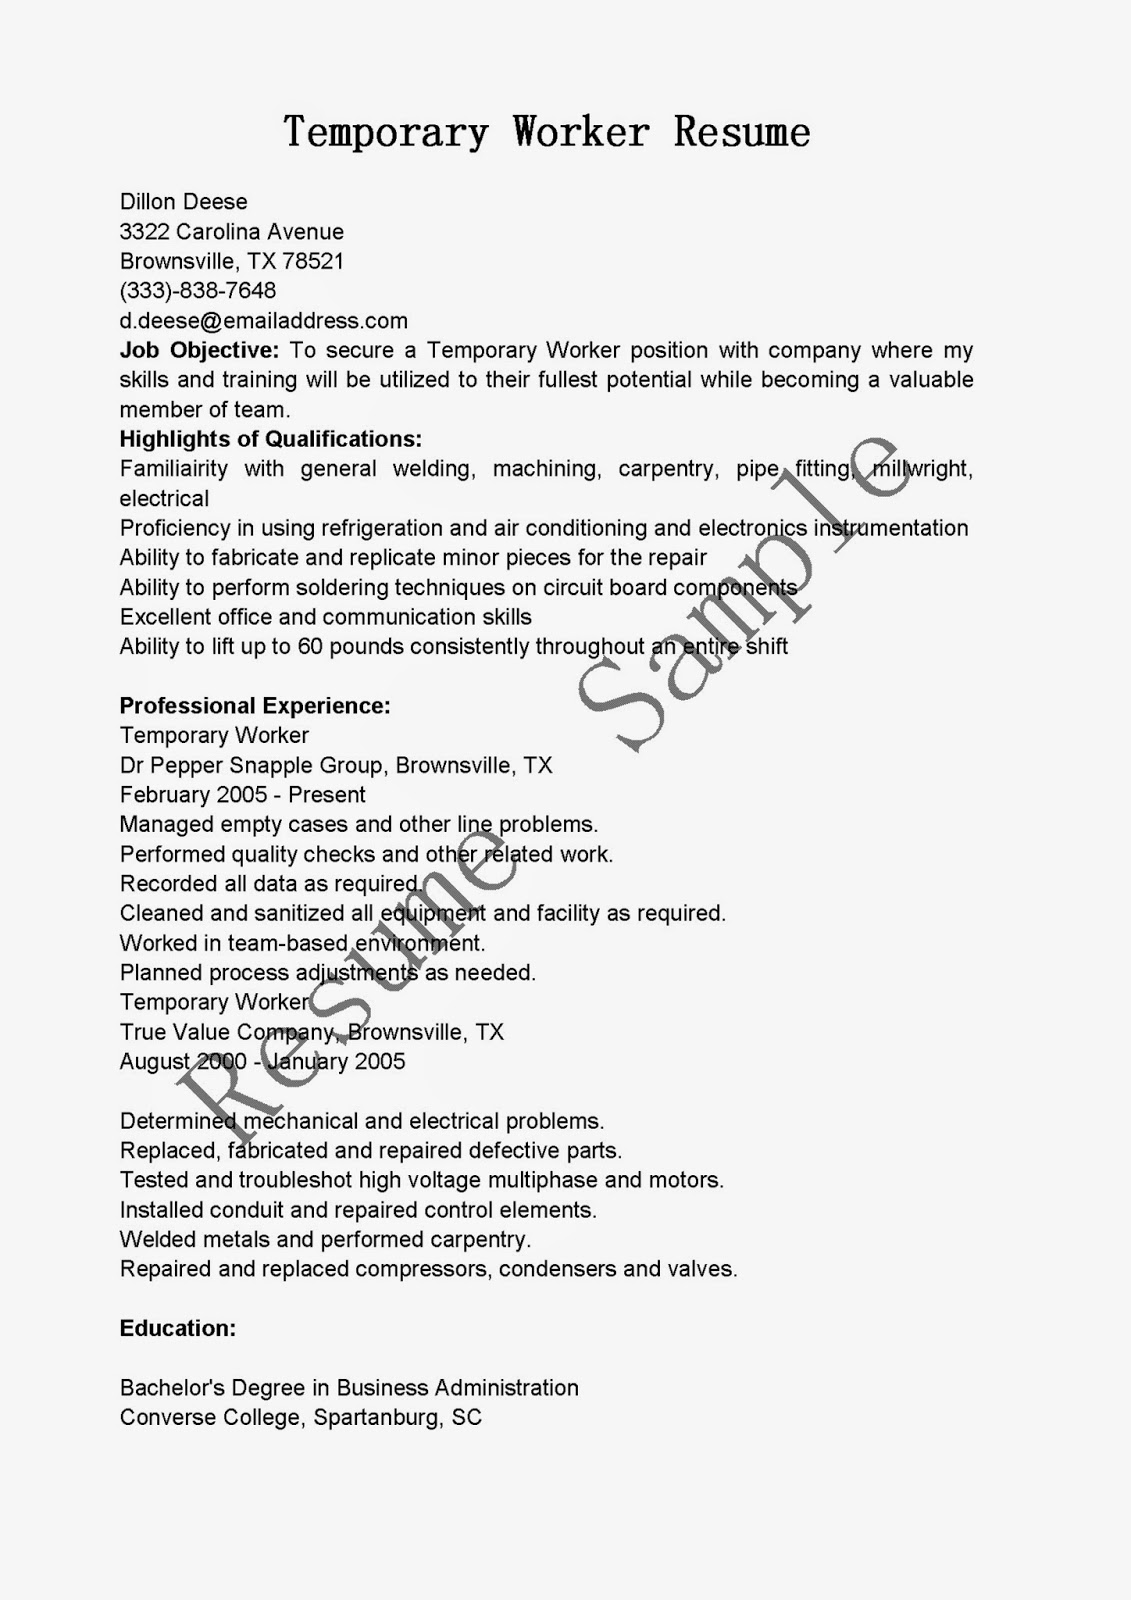 Writing Your Own Resume Resume Samples Temporary Worker Resume Sample